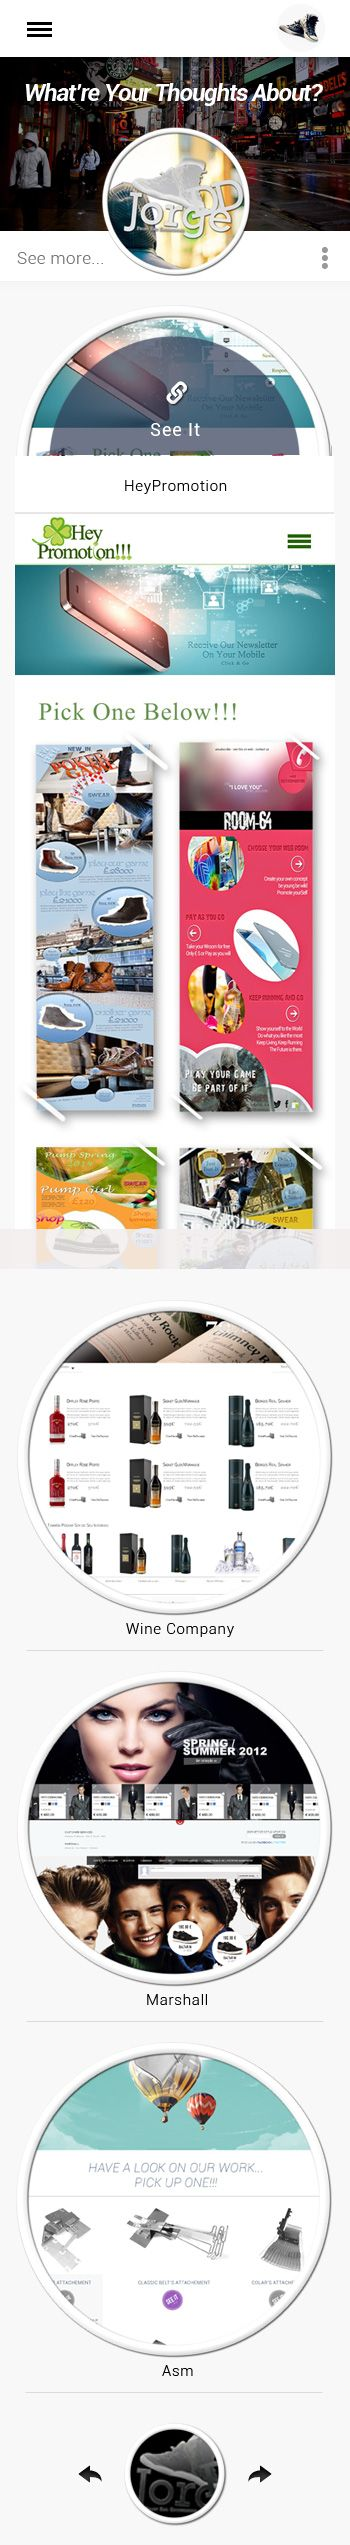 Portfolio Web Site - Mobile Version Product Page  Work of: UX/UI Developement and Front-End Developement Technologies used: HTML5 / CSS3 / AngularJS